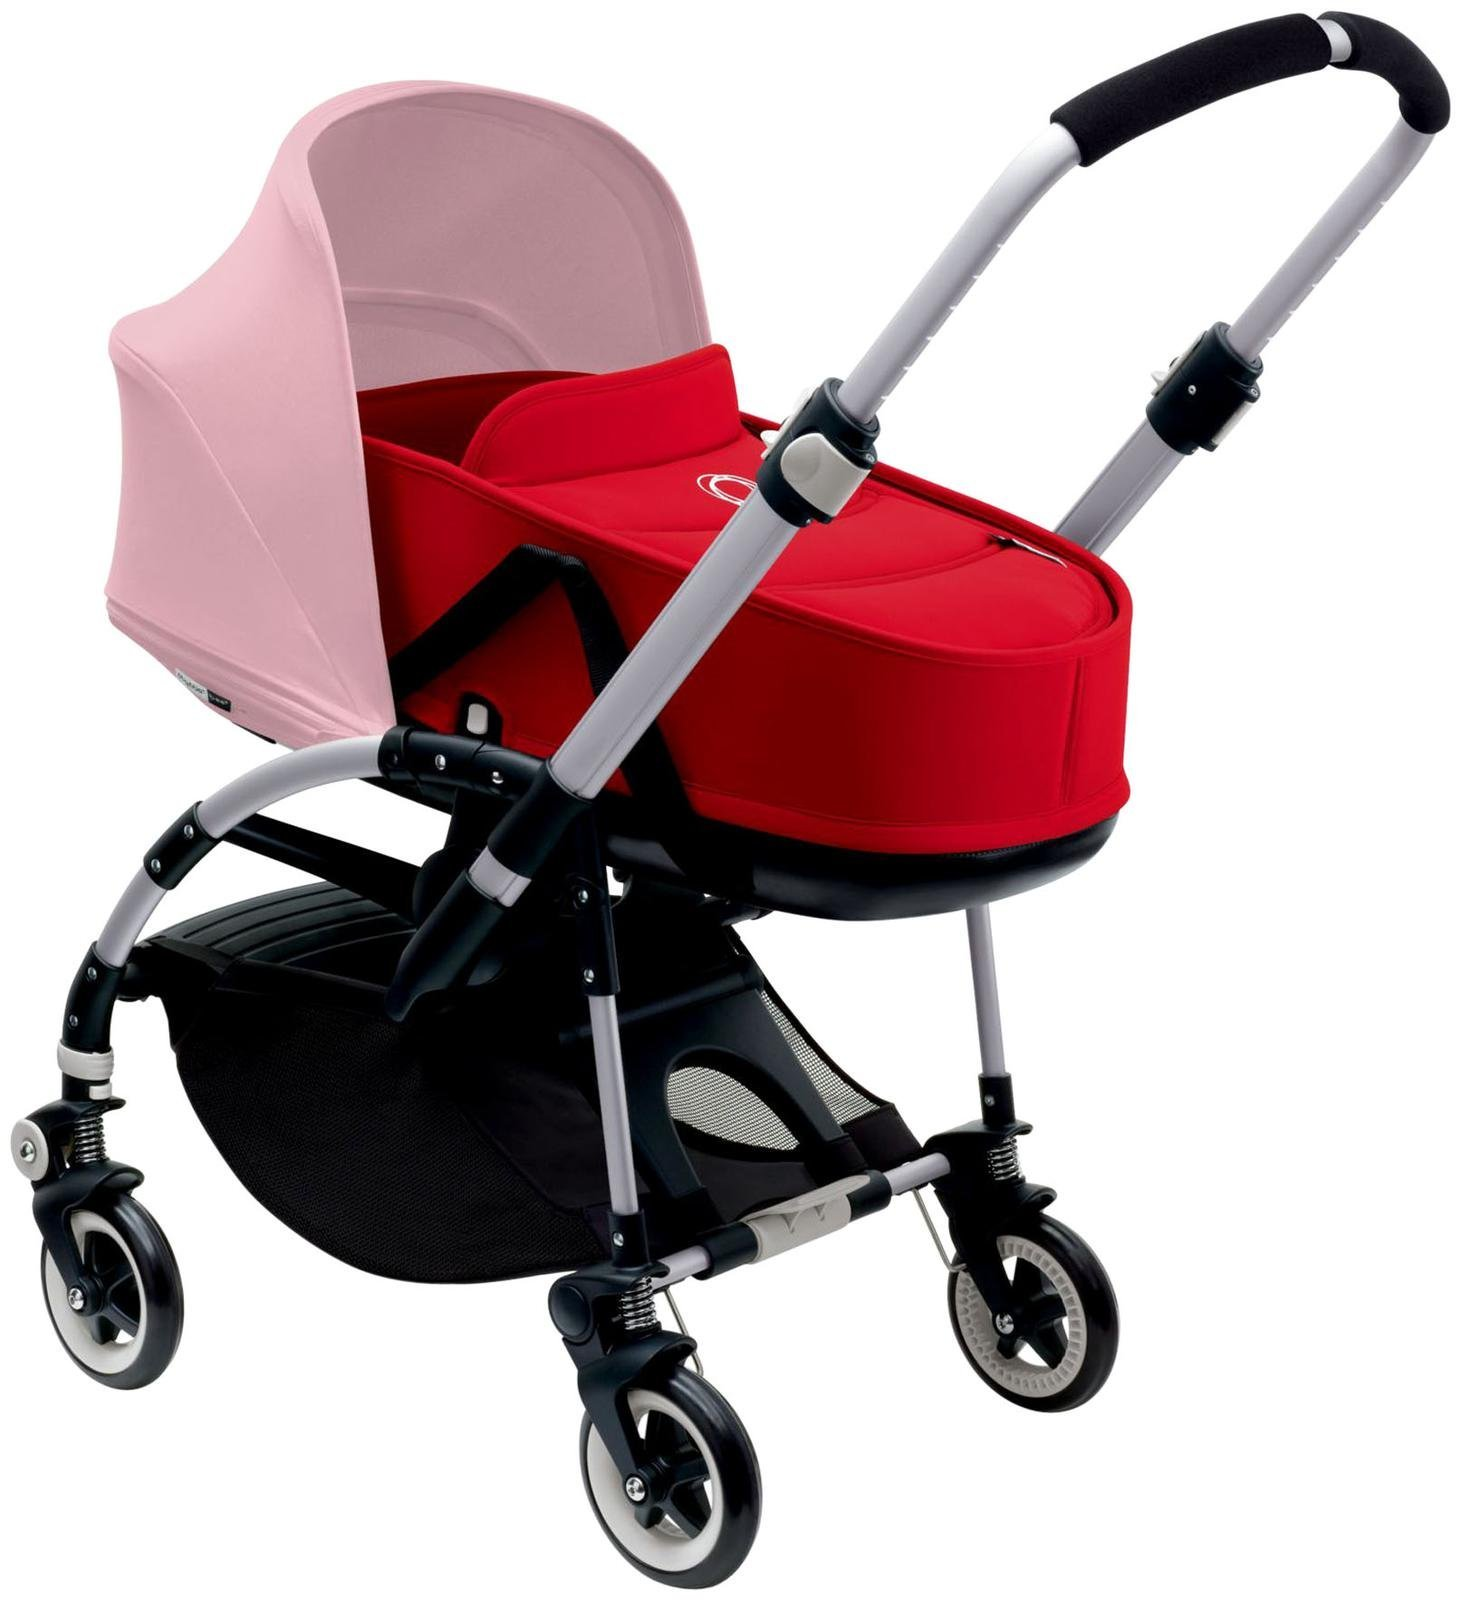 Bugaboo Bee3 Bassinet & Sun Canopy - Soft Pink - Red